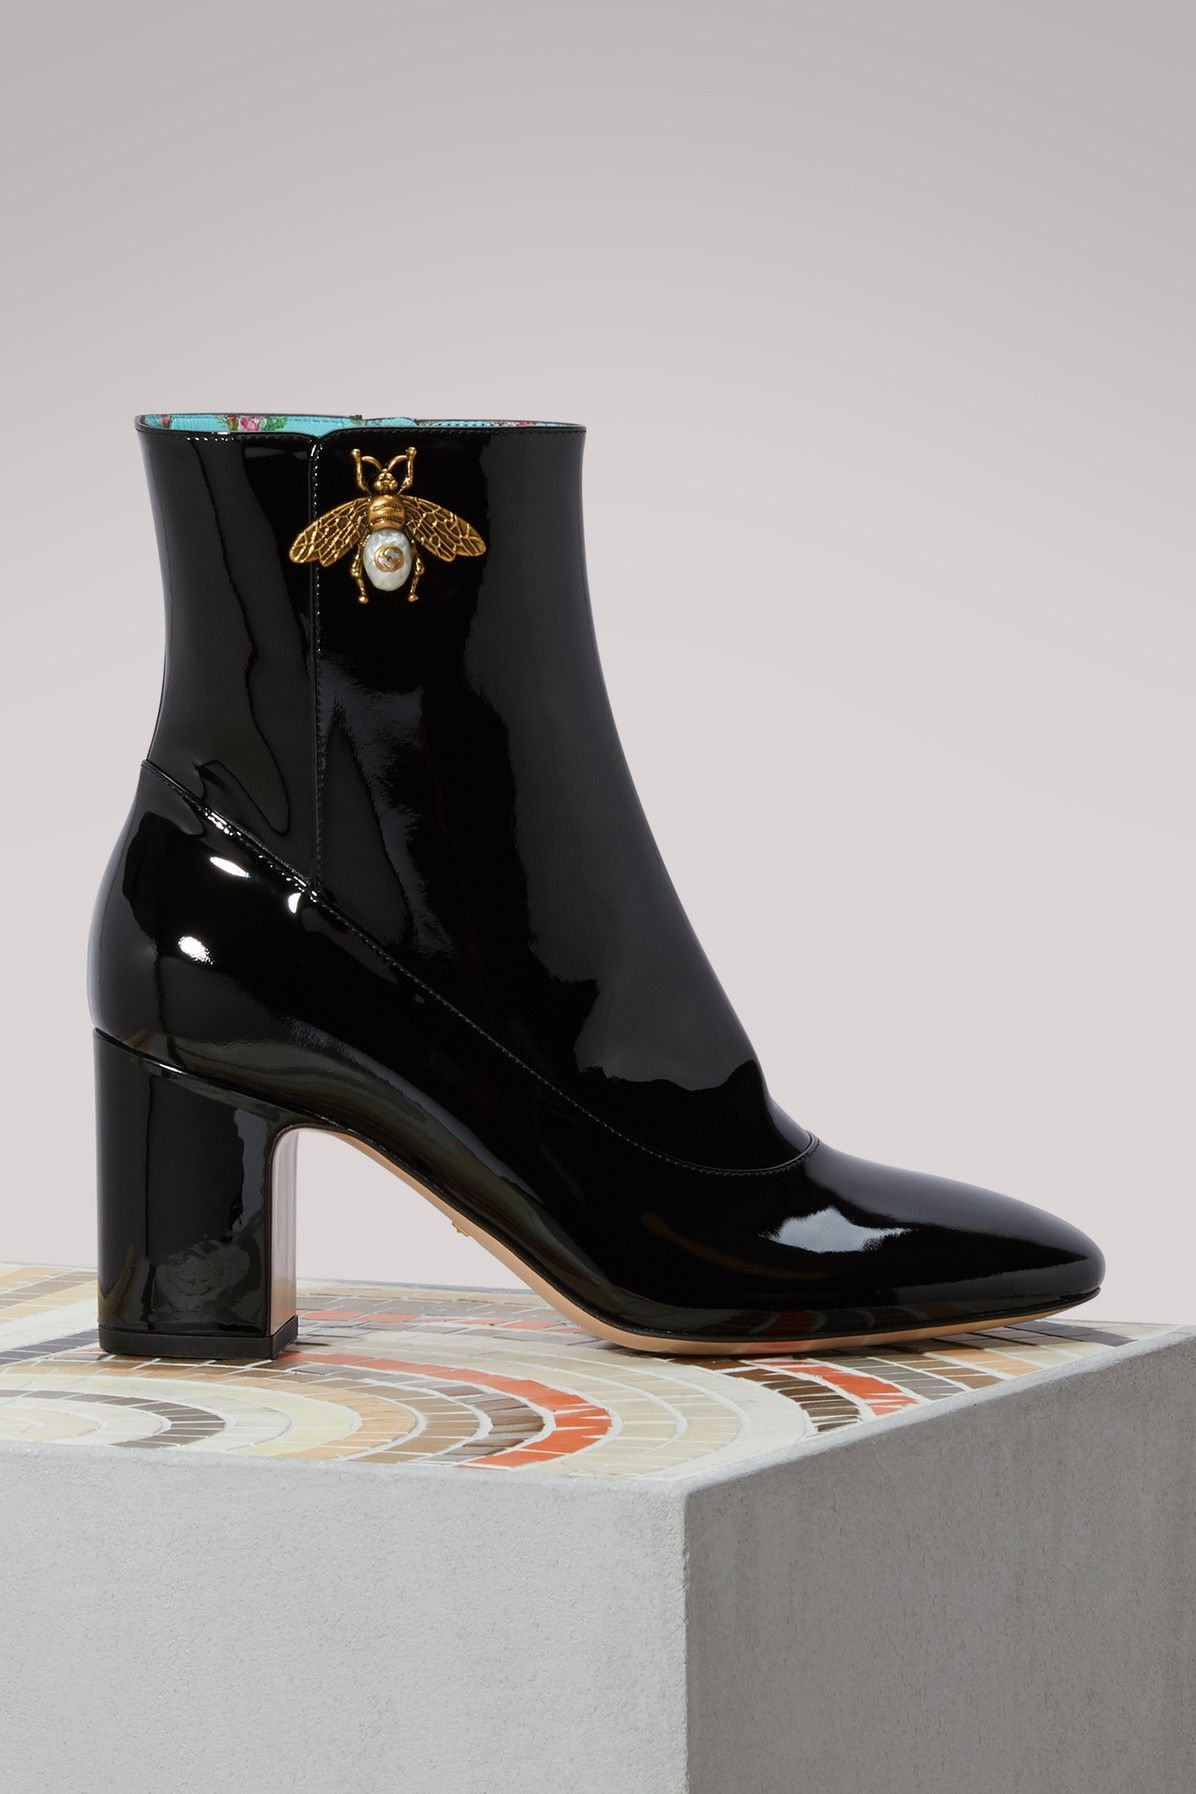 La Chambre Wellington Boots Gucci Patent Leather Ankle Boot With Bee Gucci Shoes Gucci